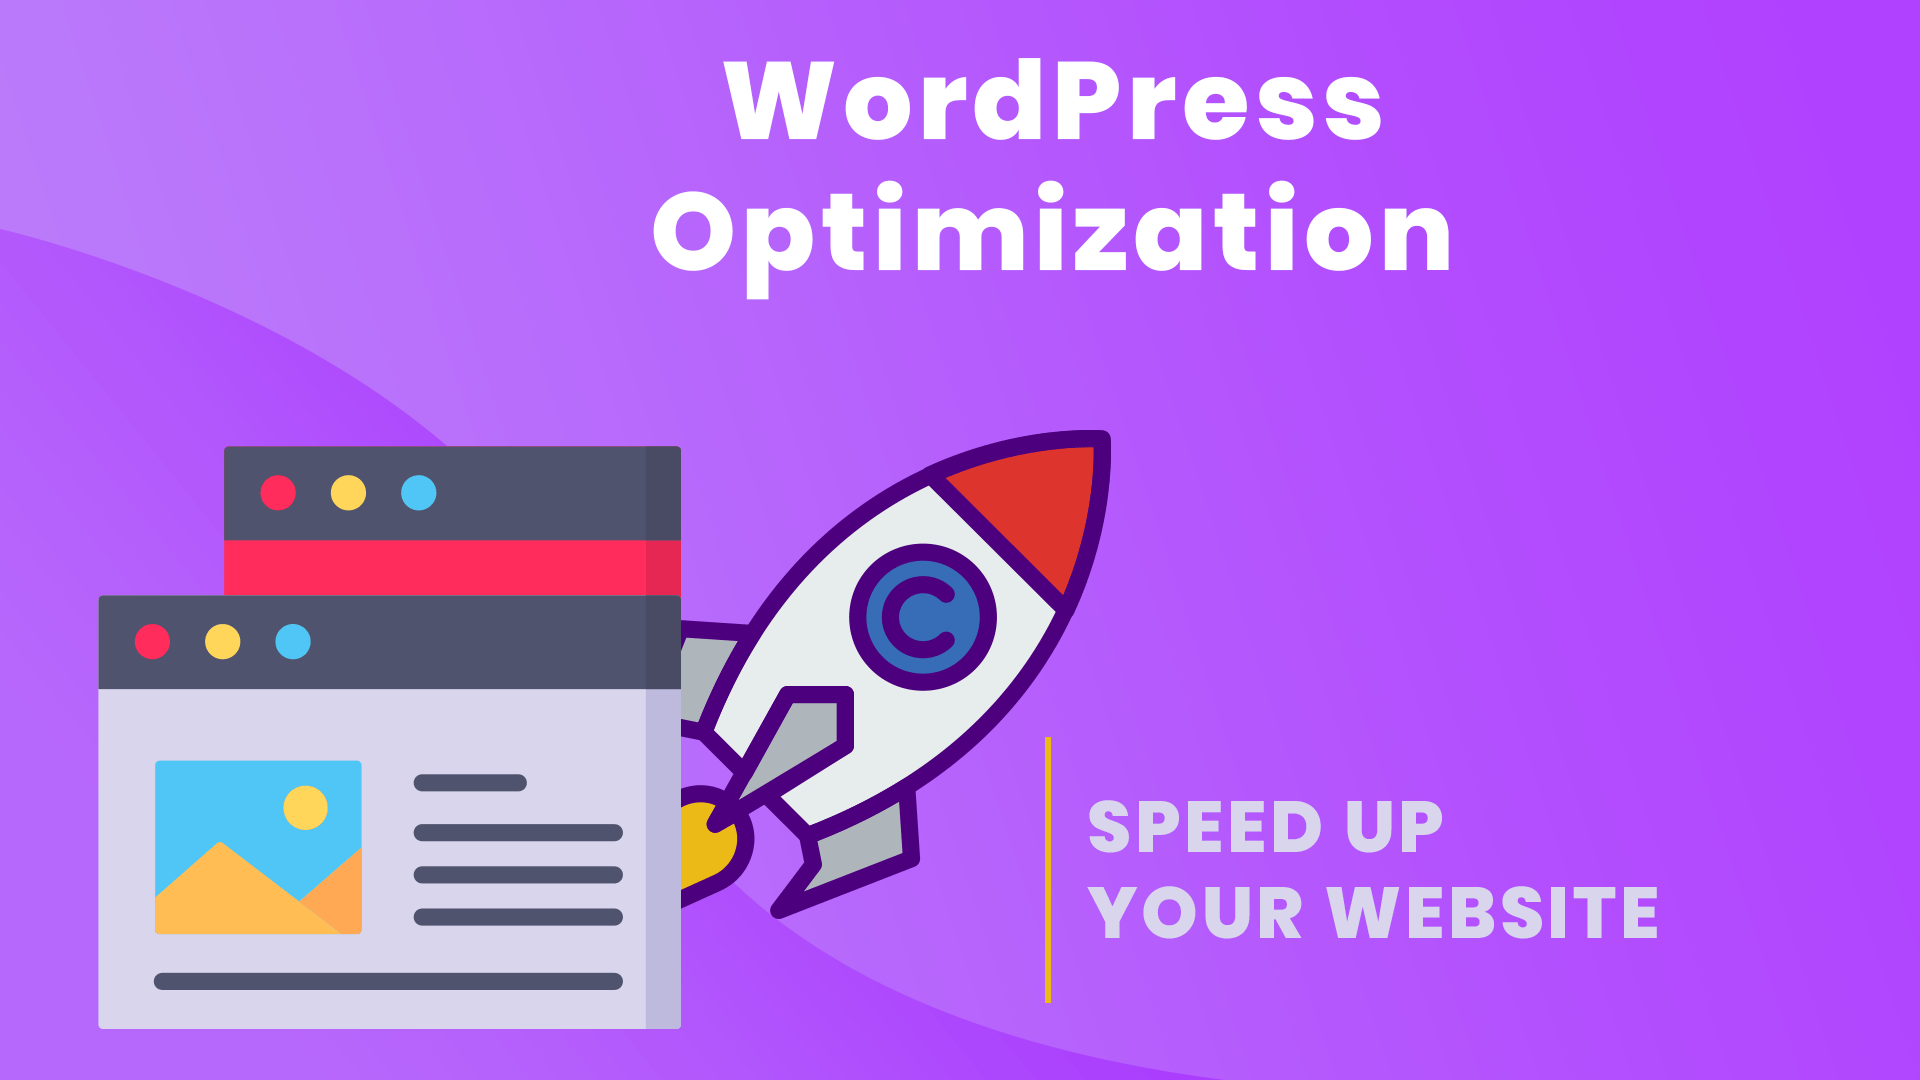 WordPress Optimization Course - WPSinhala